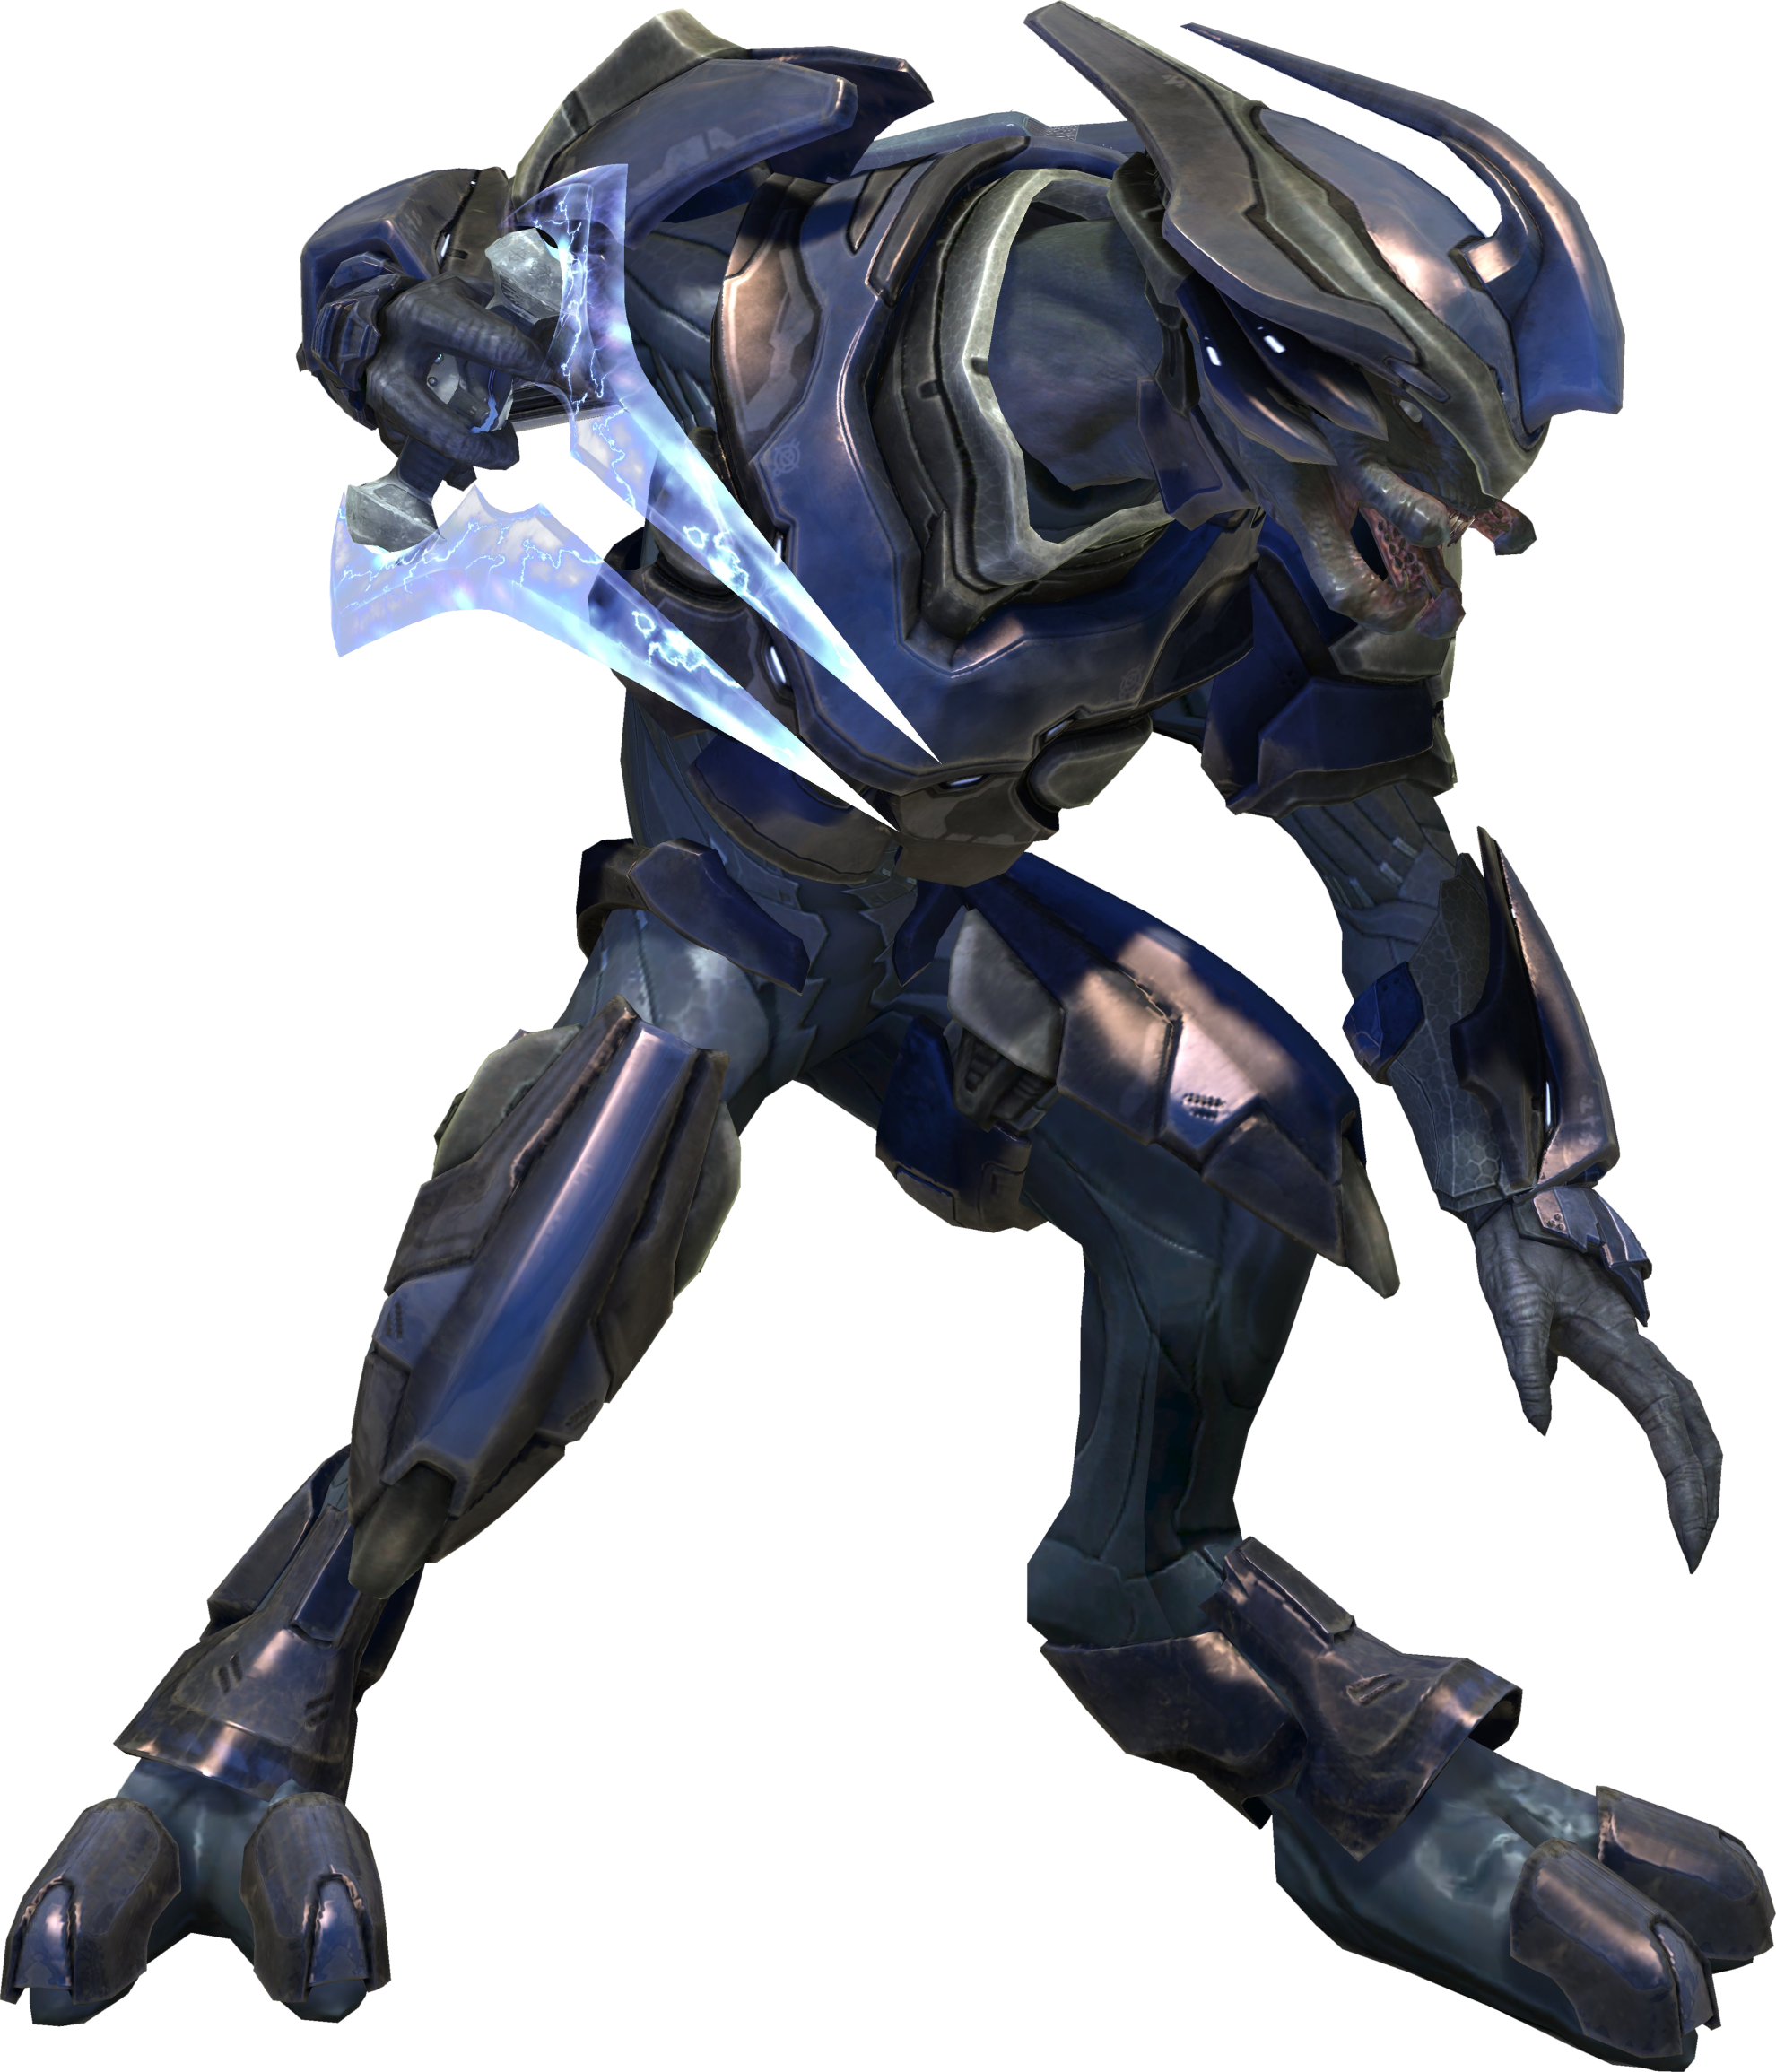 Halo 2 Anniversary Models | Classic Halo Games | Forums | Halo ...